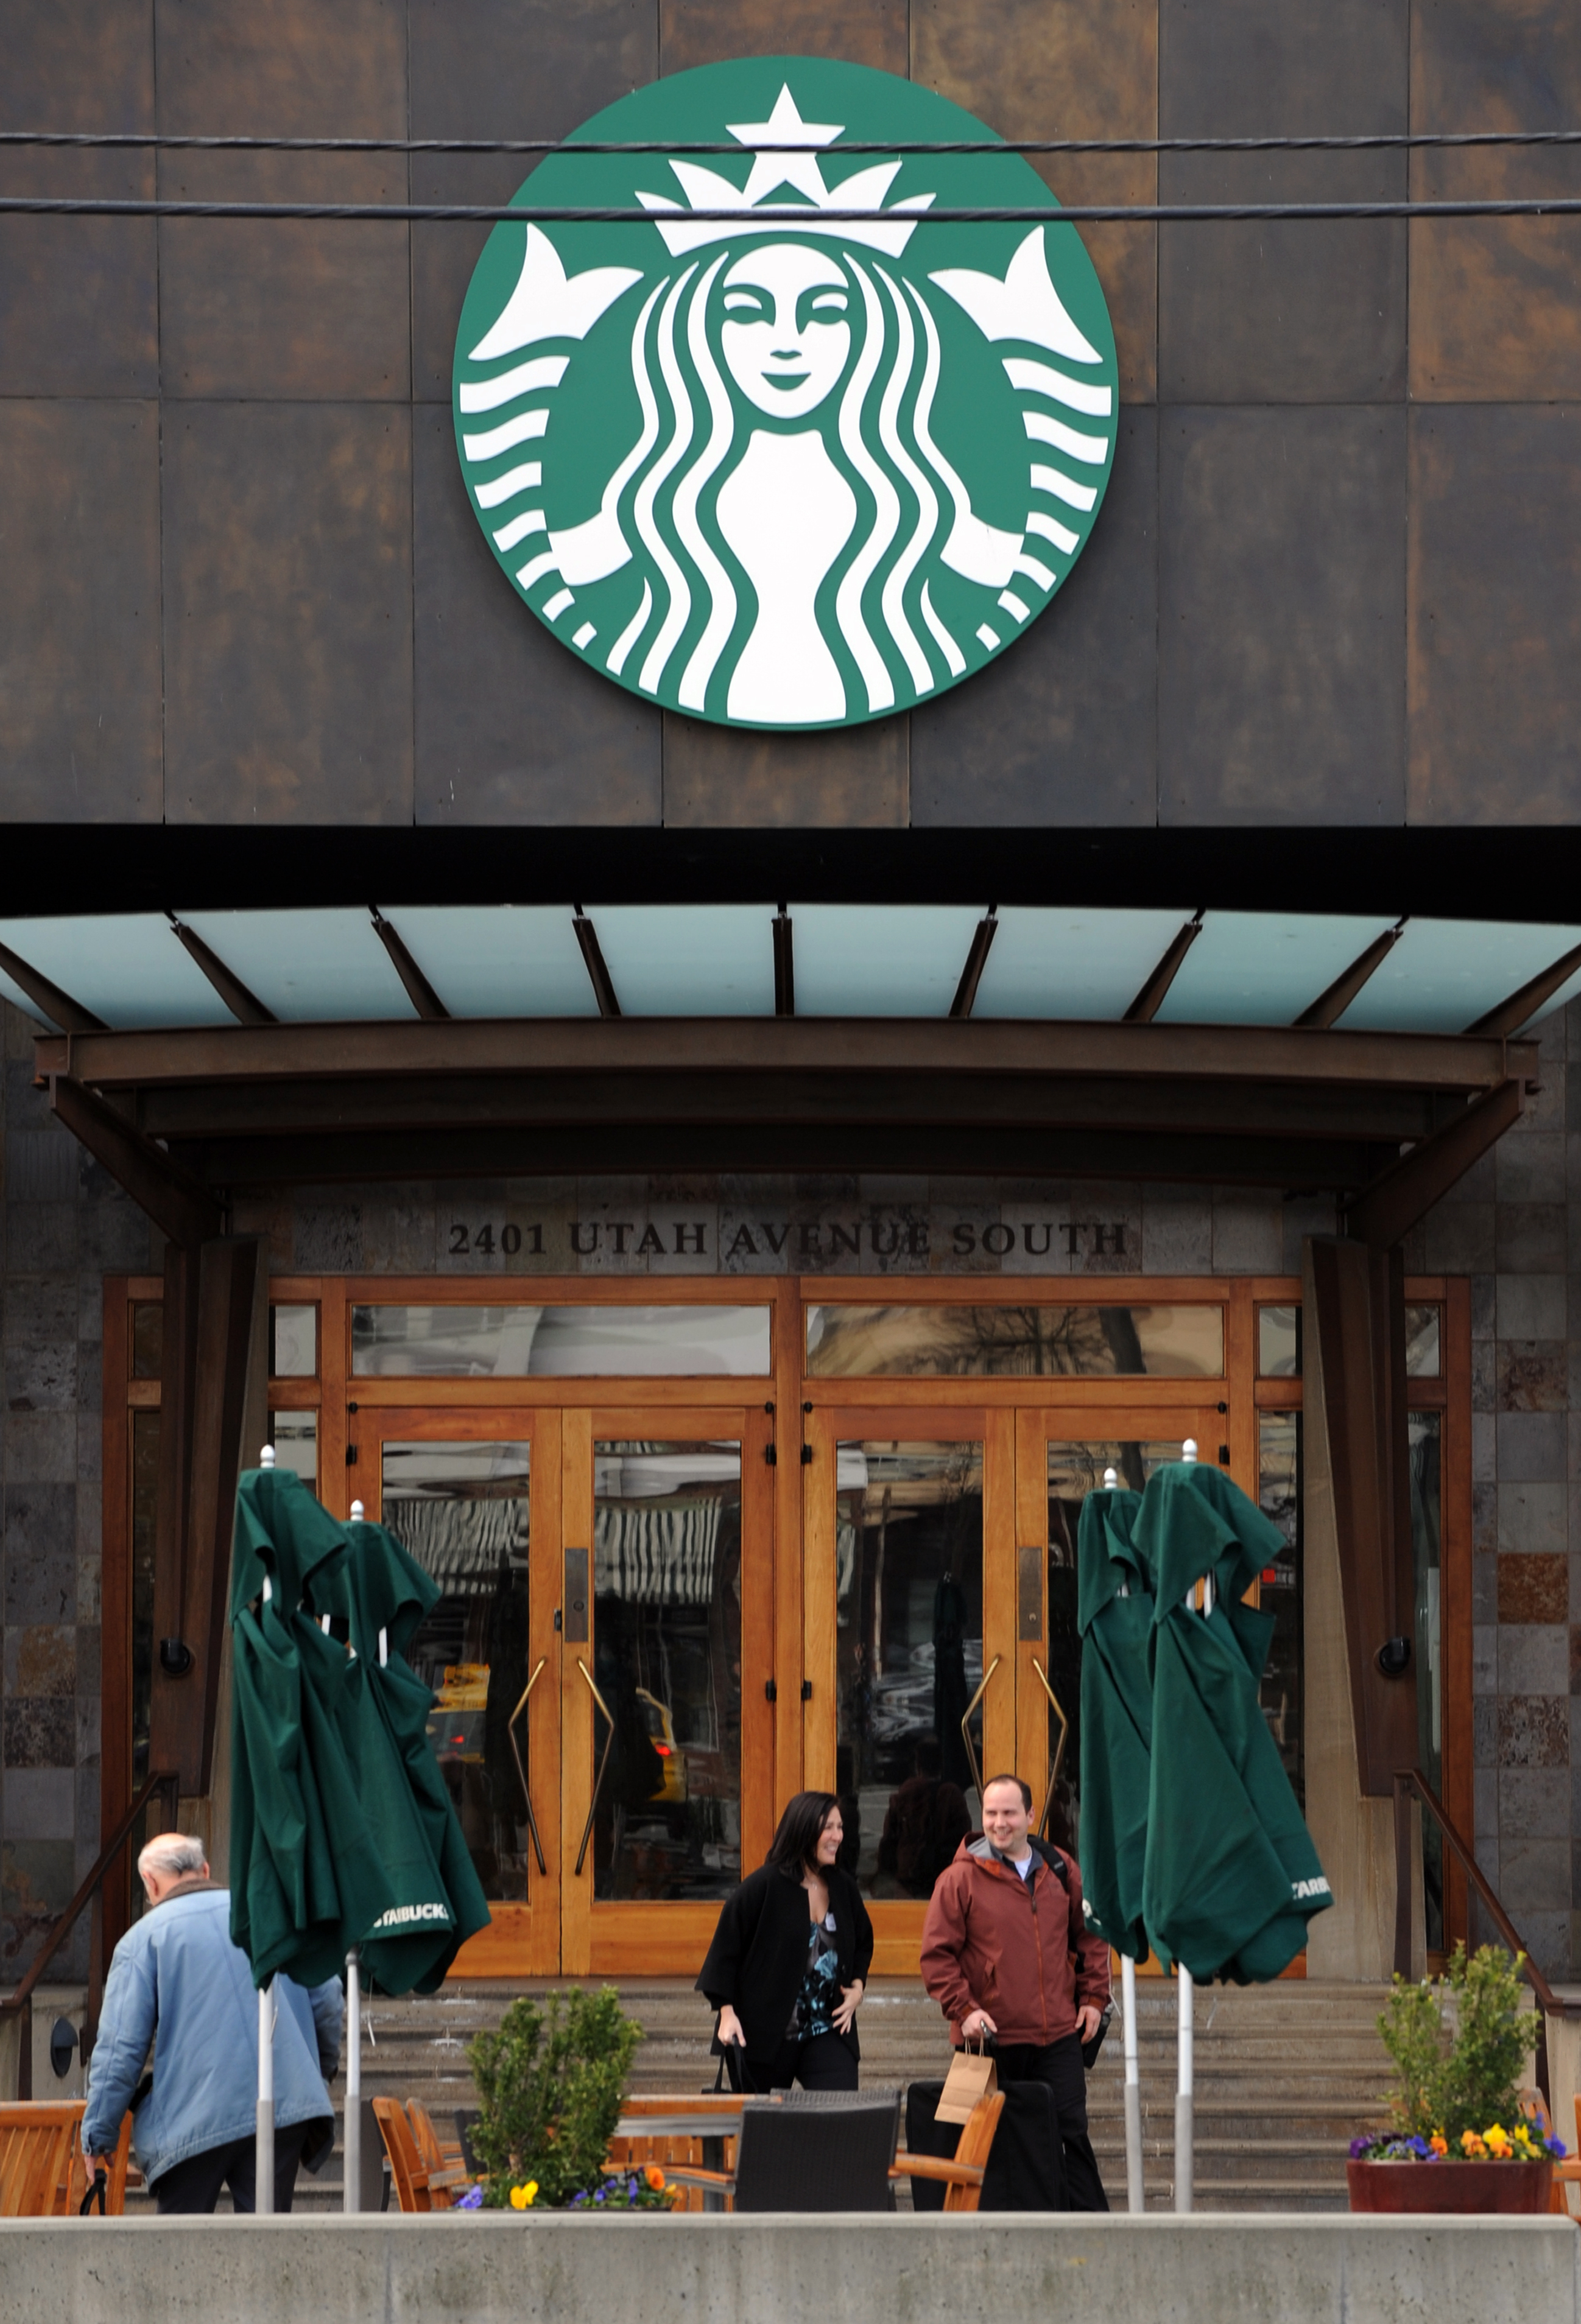 Starbucks Center, headquarters for the international coffee and coffeehouse chain, is seen on March 22, 2011 in Seattle, Washington.